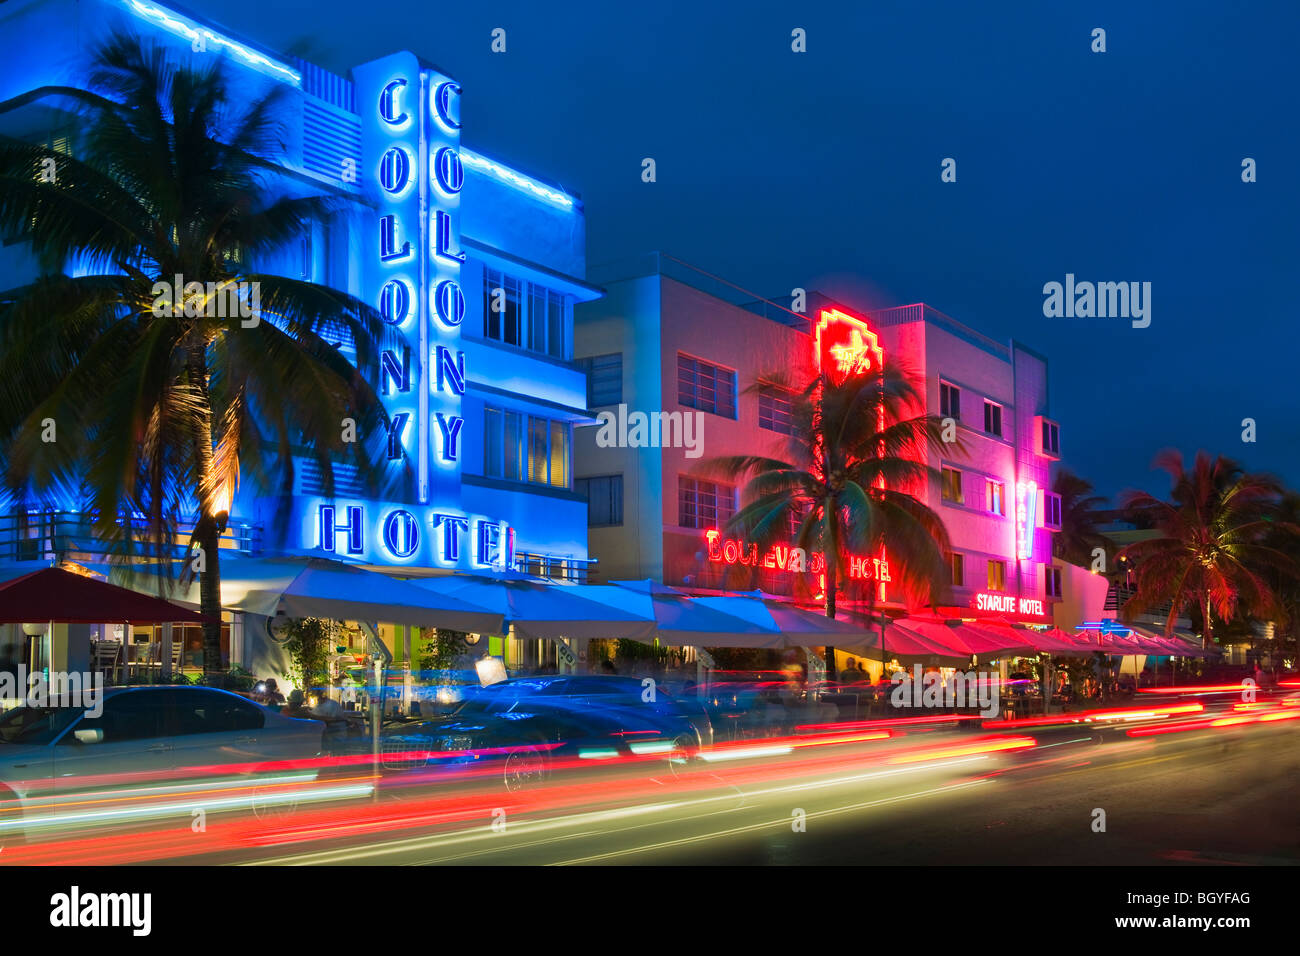 Illuminated buildings and car lights at night - Stock Image